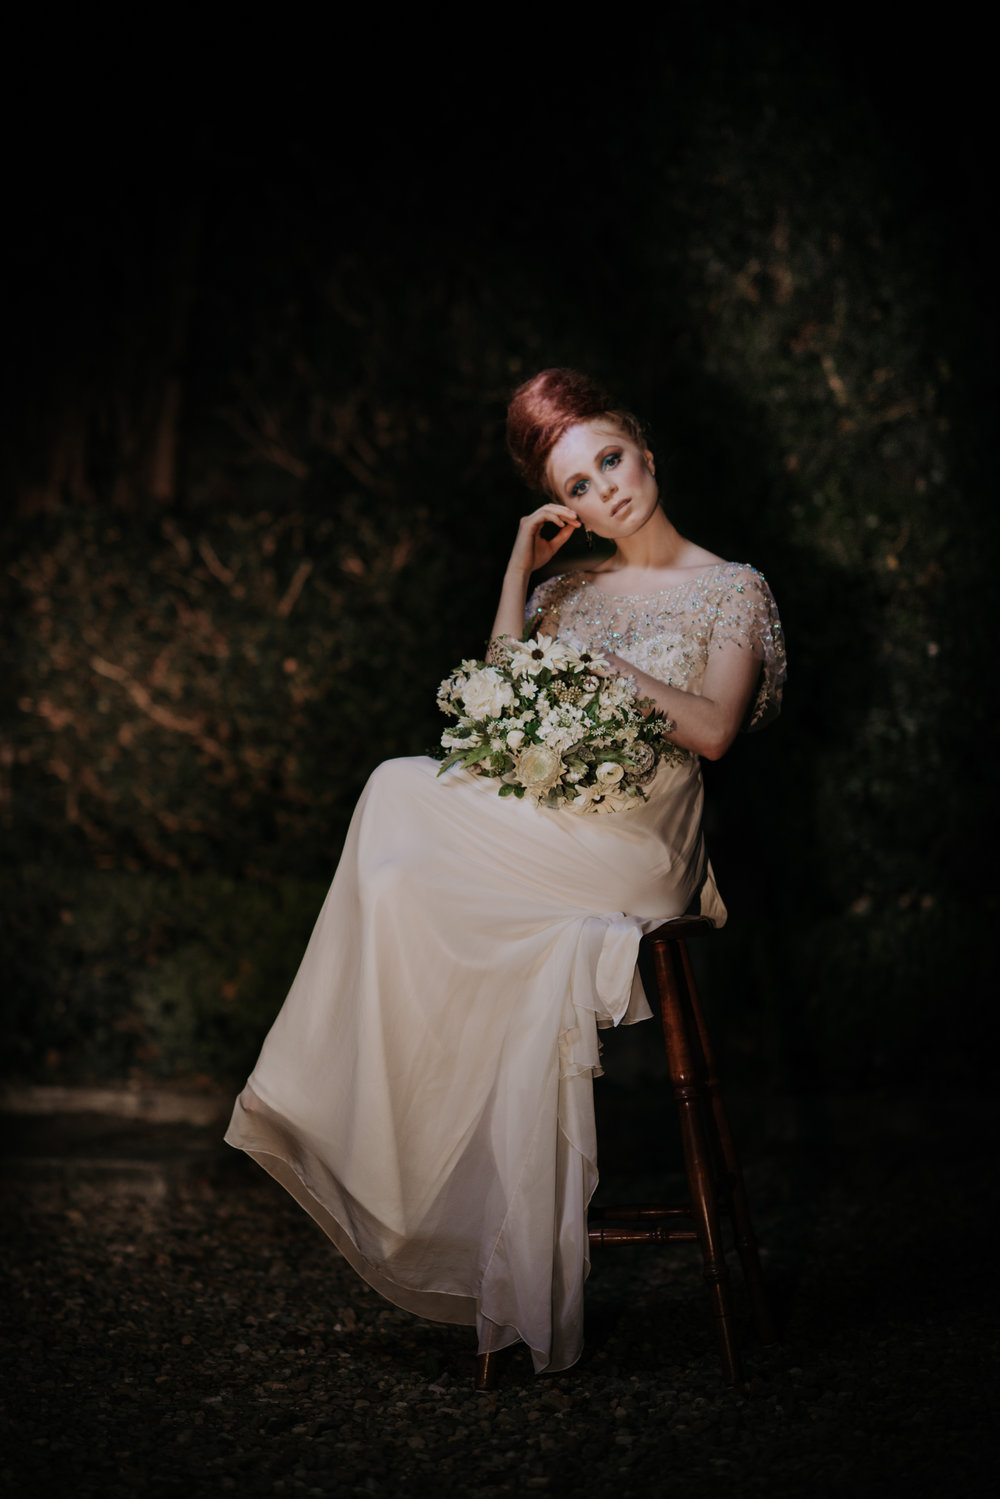 LOVELENSCAPES PHOTOGRAPHY X ANNA CAMPBELL BRIDAL X LEMAE MAKEUP ARTISTRY X BLOOMING LOVELY BOUQUETS X ERIN LIGHTFOOT X LITTLE WHITE COUTURE • 36.jpg